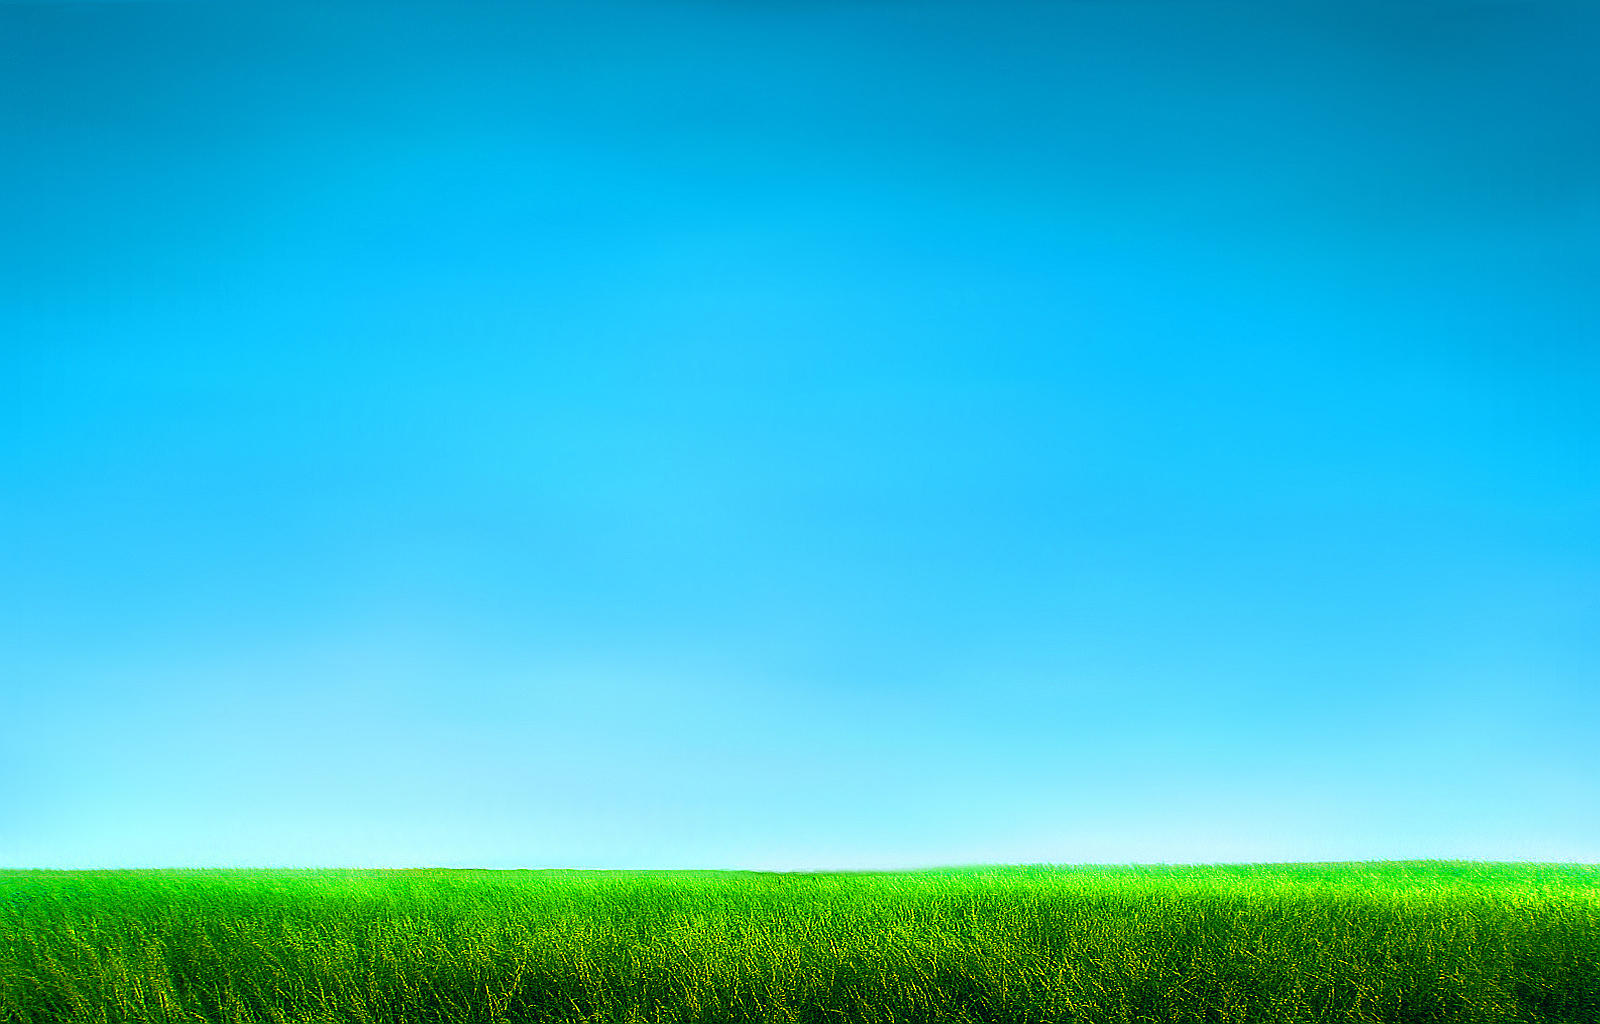 Sky and Grass Colors by legosz on DeviantArt